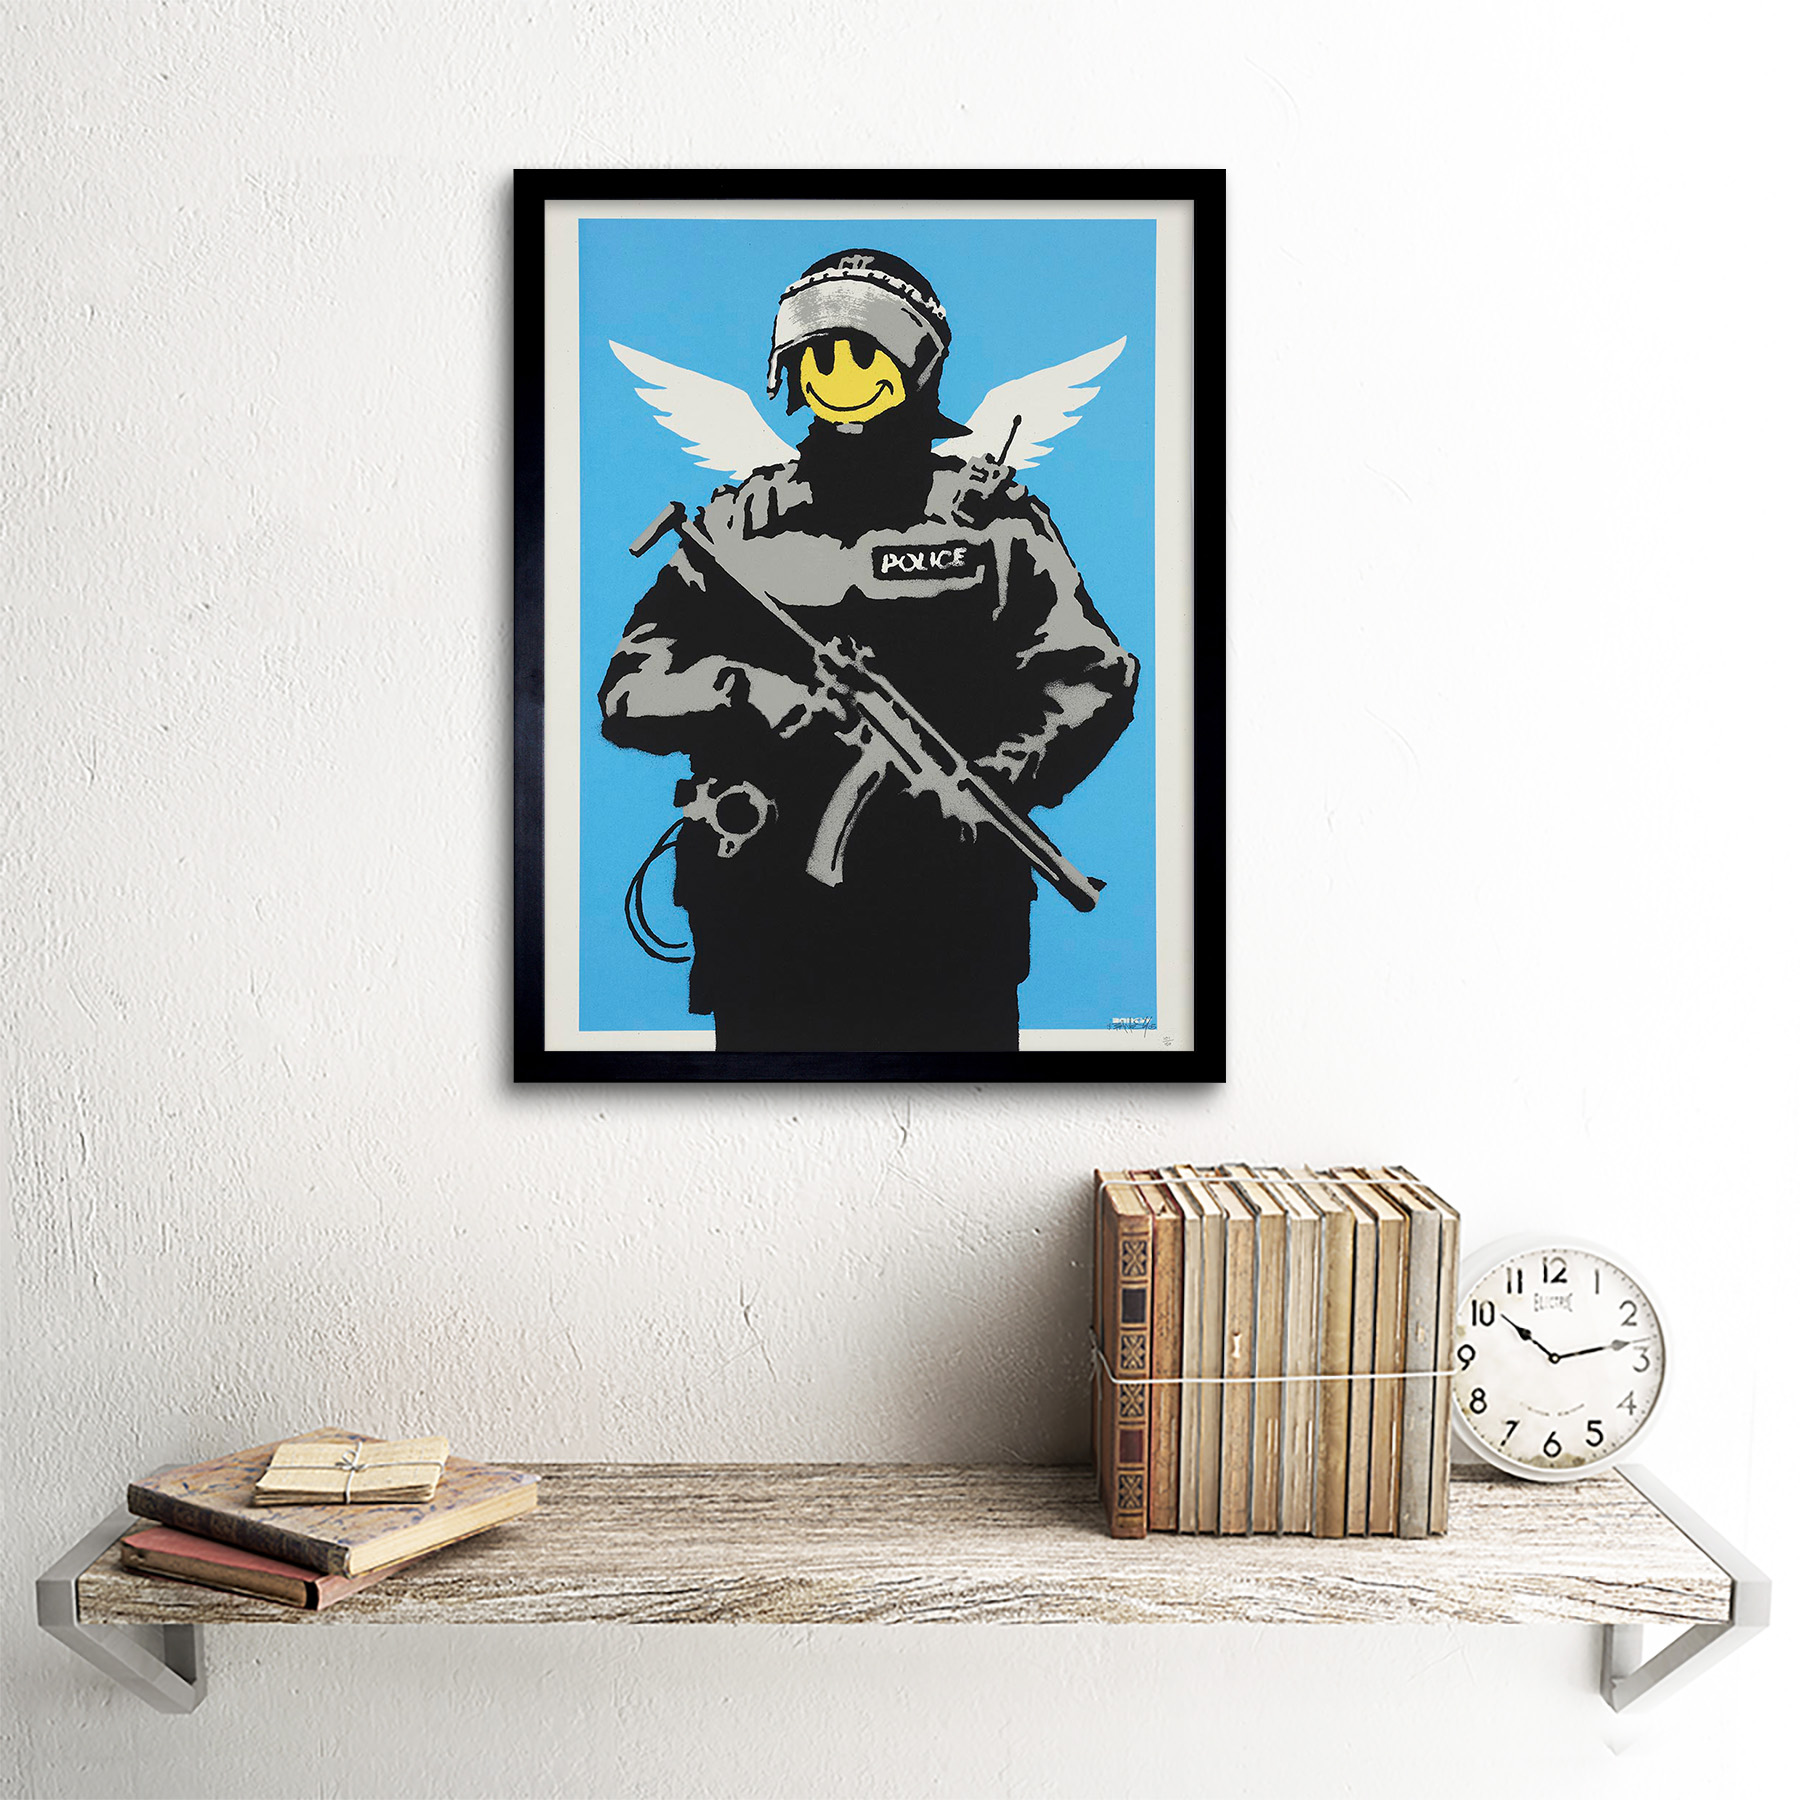 Banksy Happy Angel Policeman Graffiti Street Art Giant Canvas Art Print